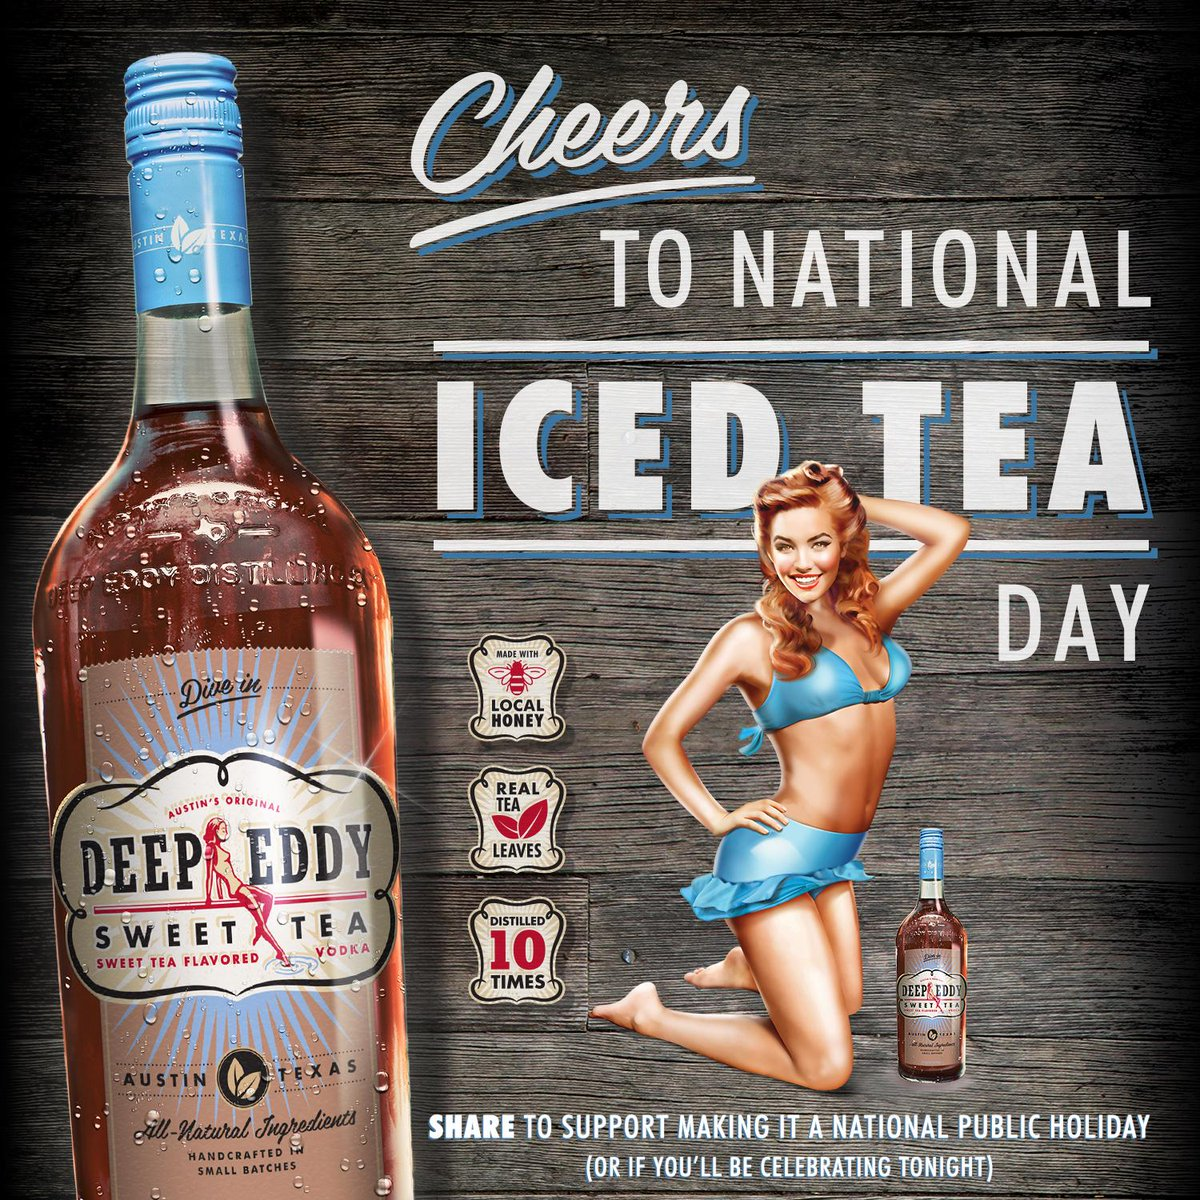 It's #NationalIcedTeaDay, but post offices are open. SHARE THIS to support making it an official public holiday. http://t.co/iiIpm8u0jB